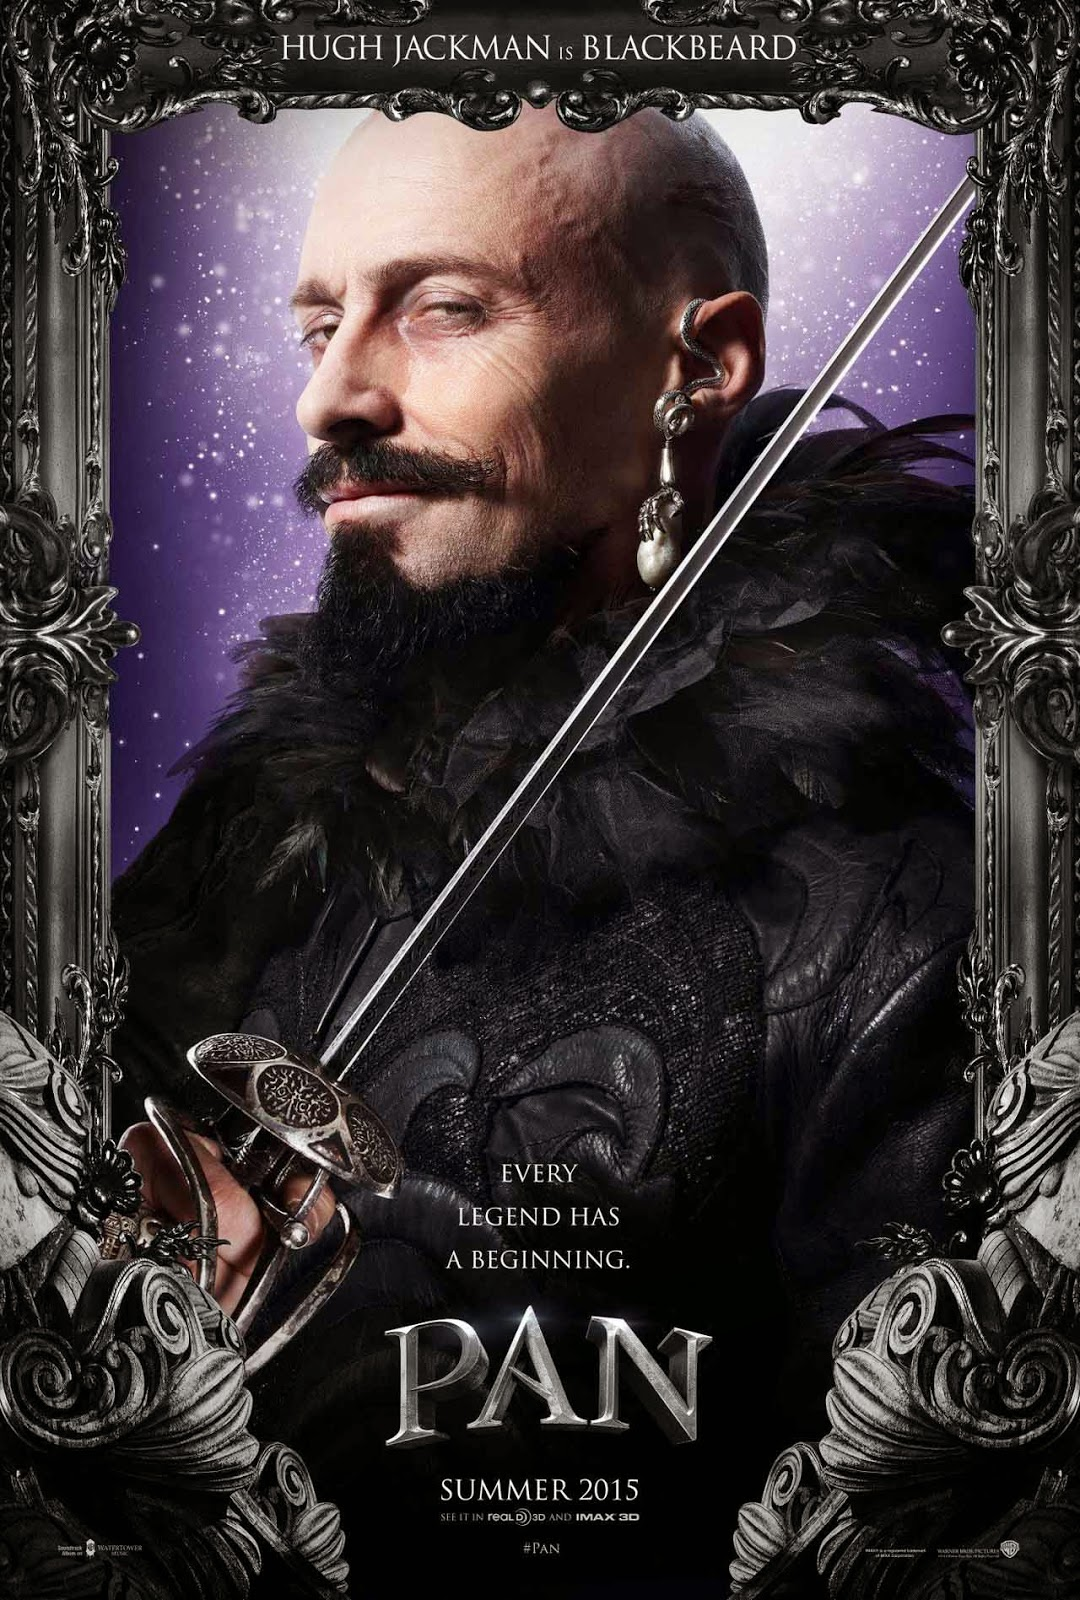 Pan: Hugh Jackman as Blackbeard